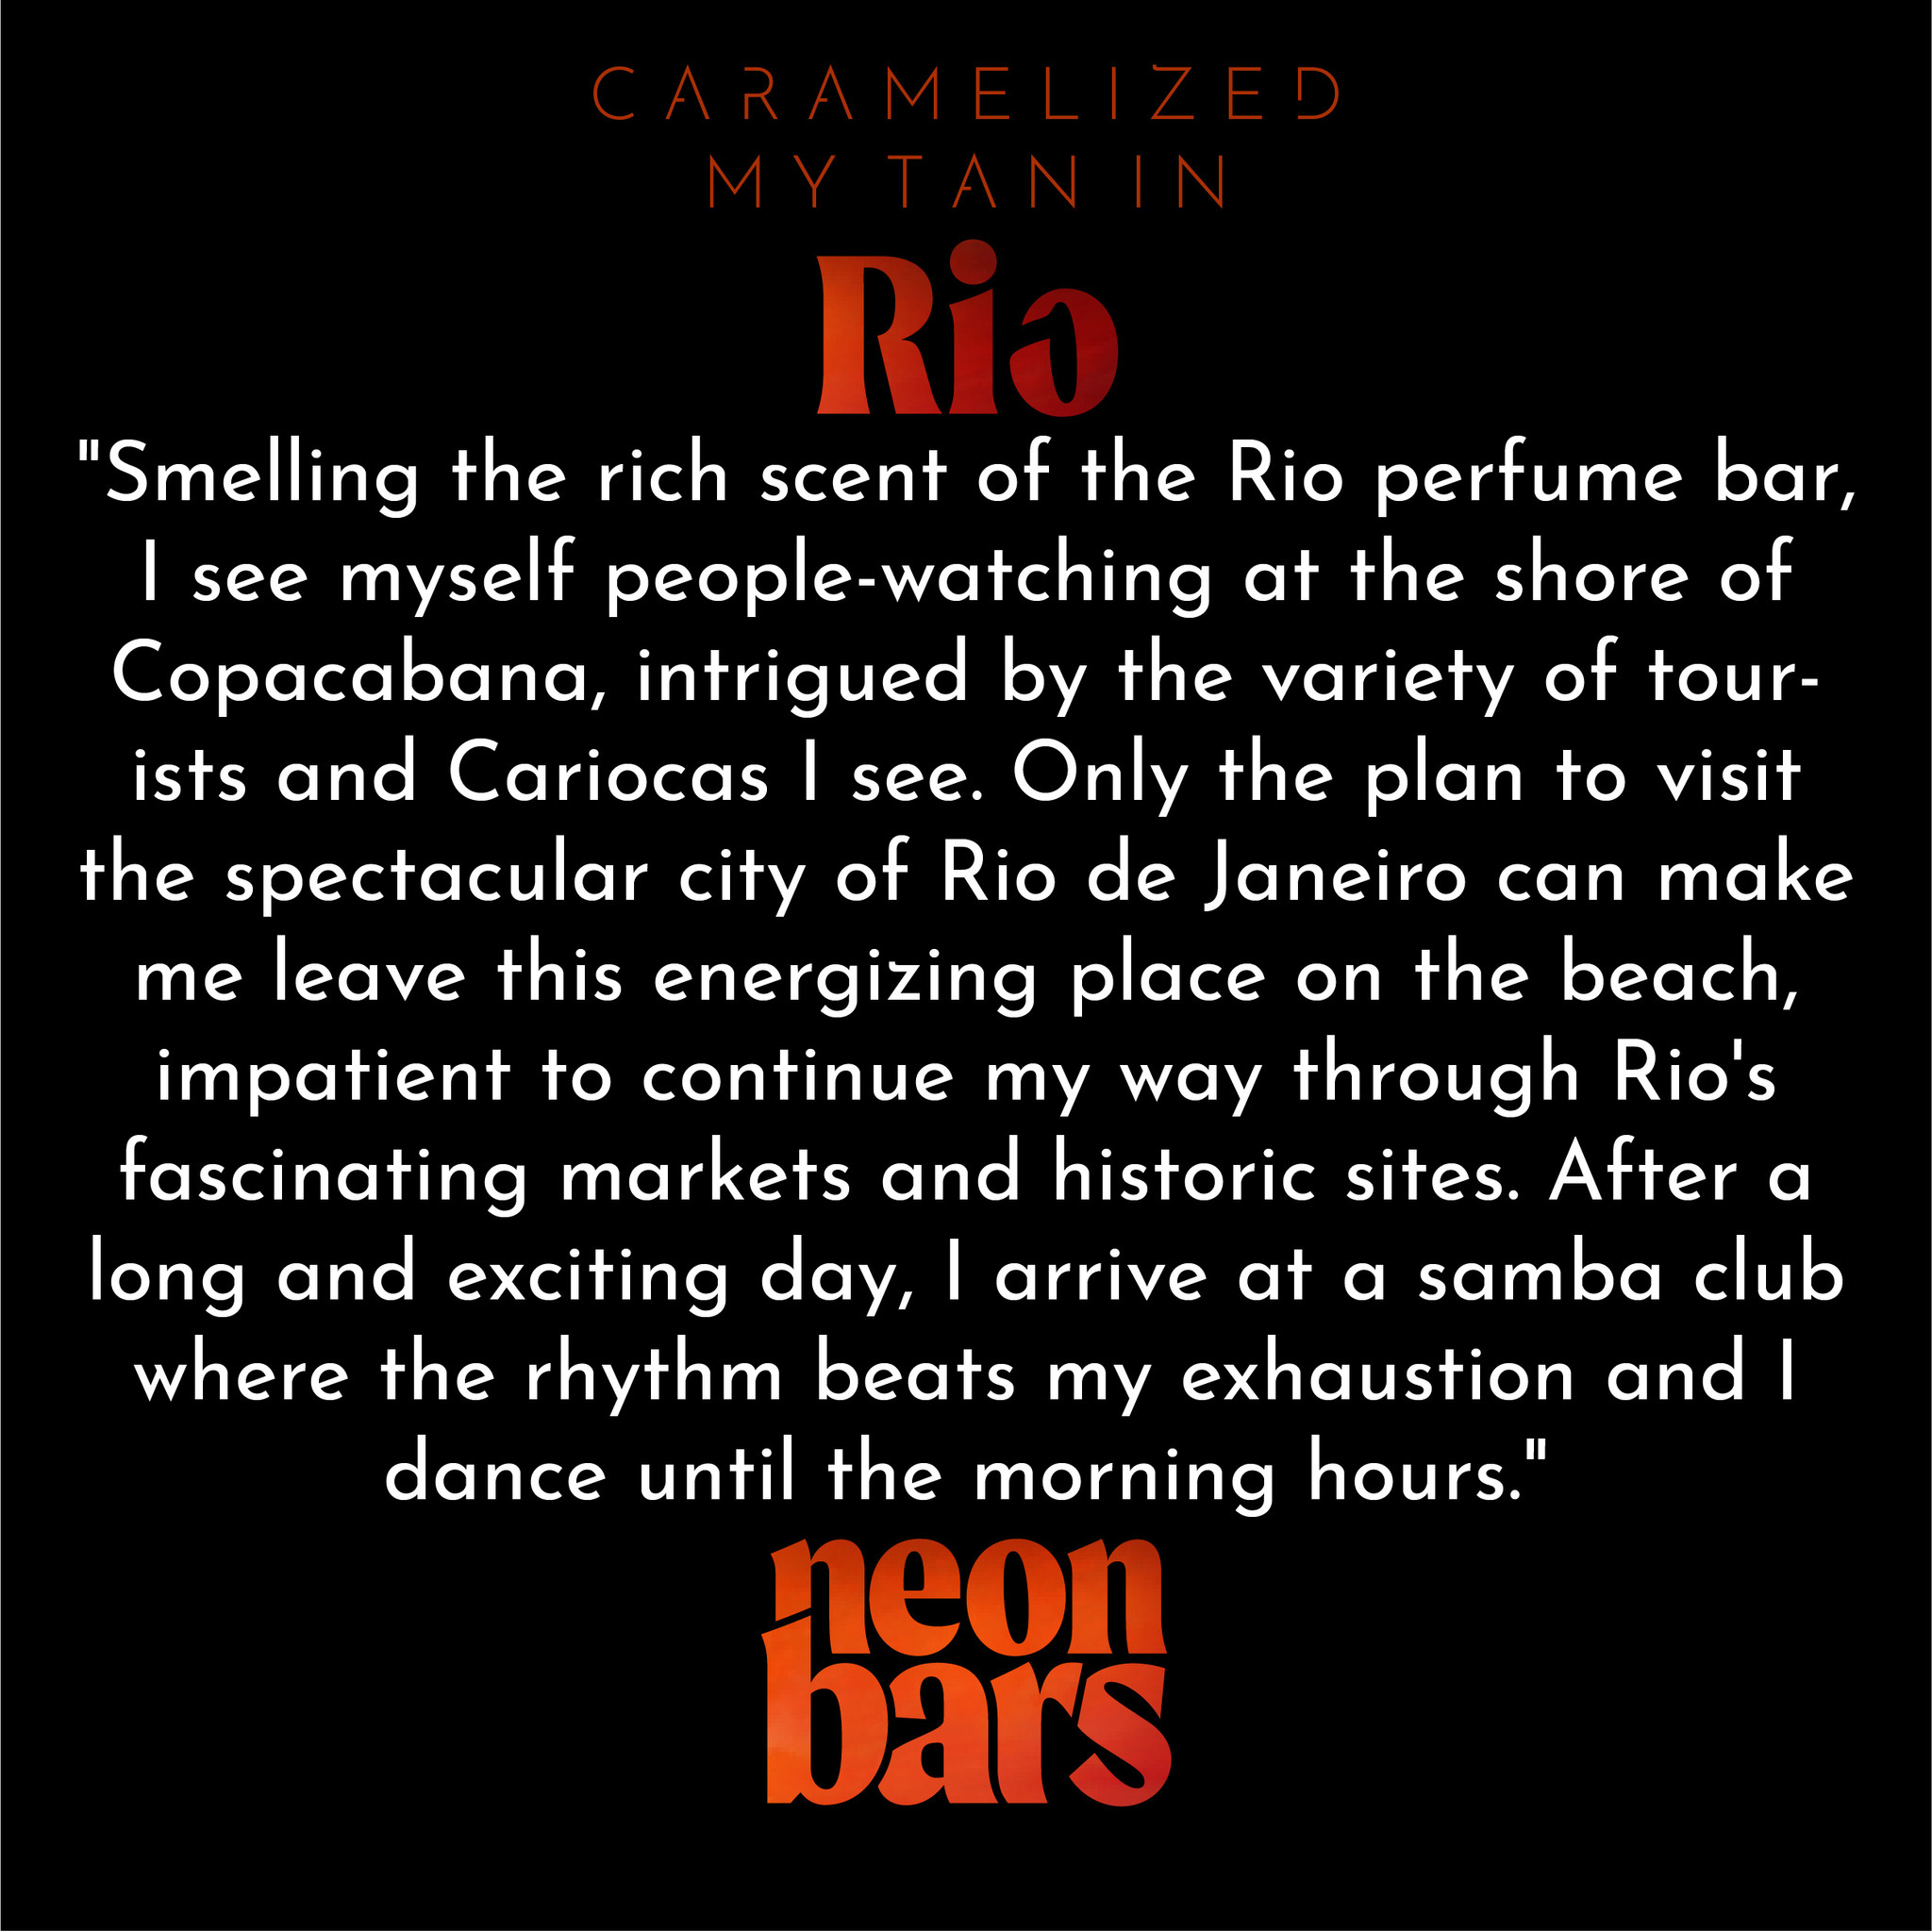 caramelized my tan in Rio